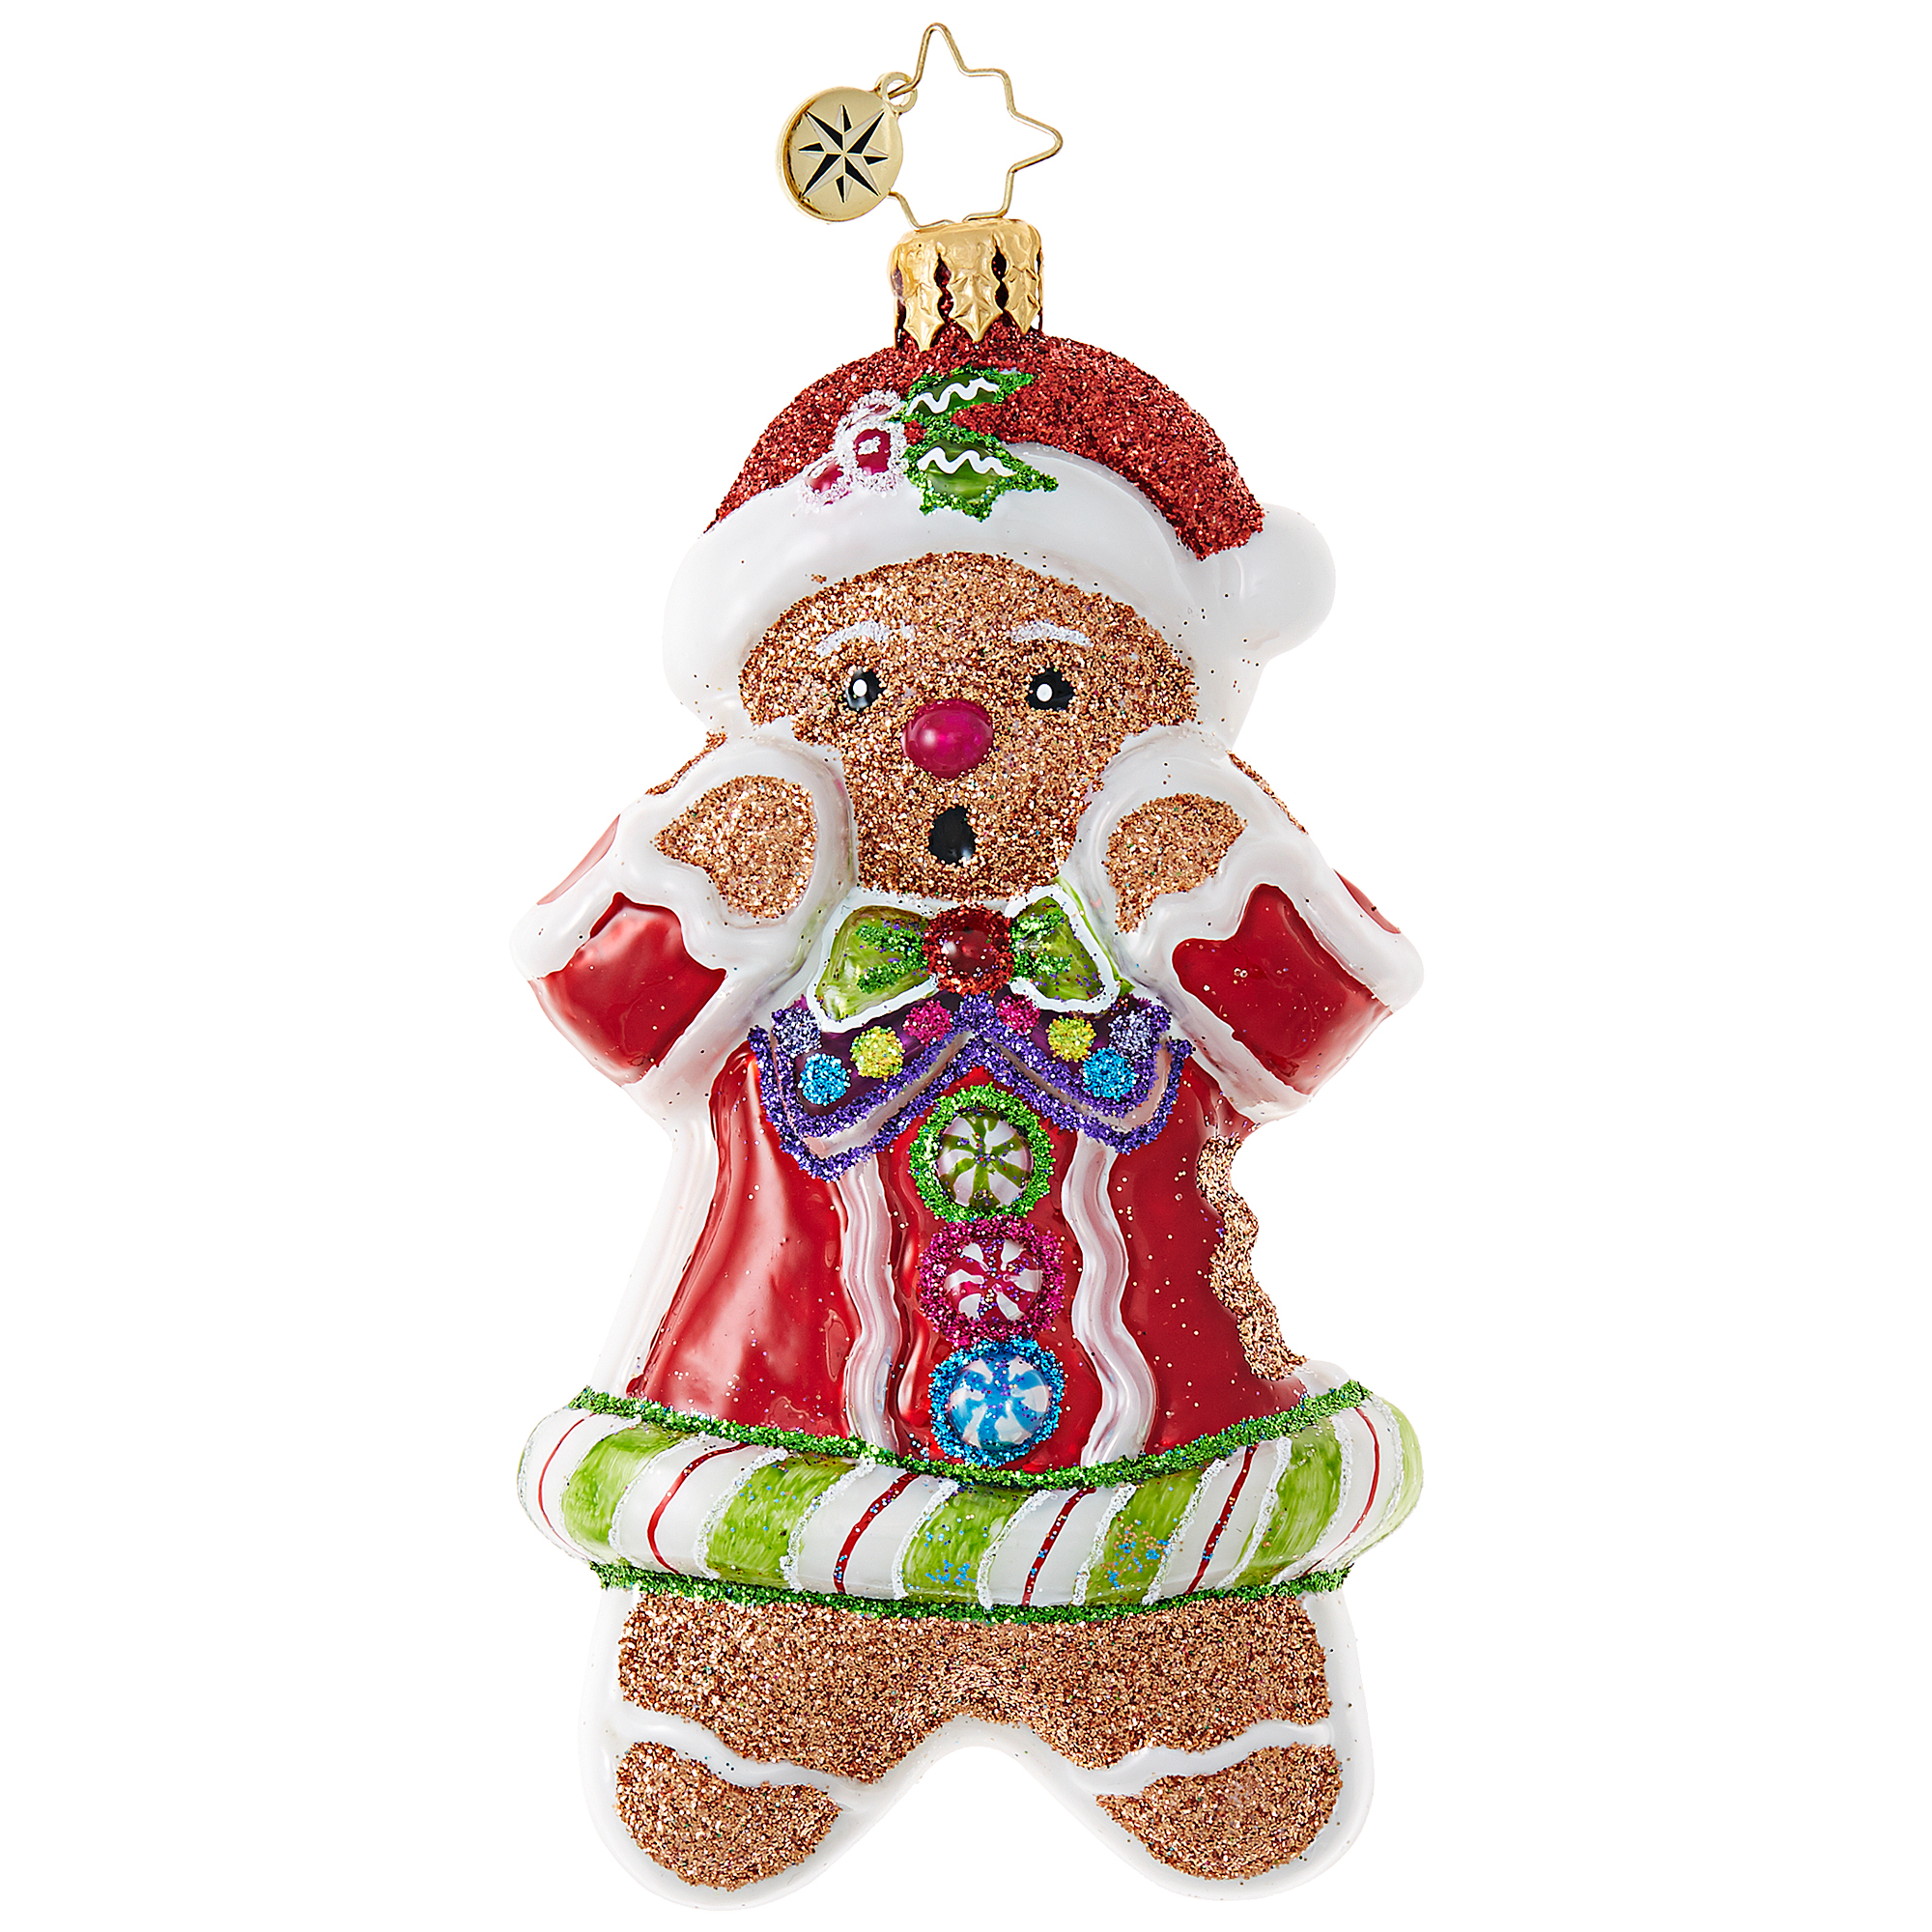 Christopher Radko Tasty Bite Gingerbread Man Christmas Ornament